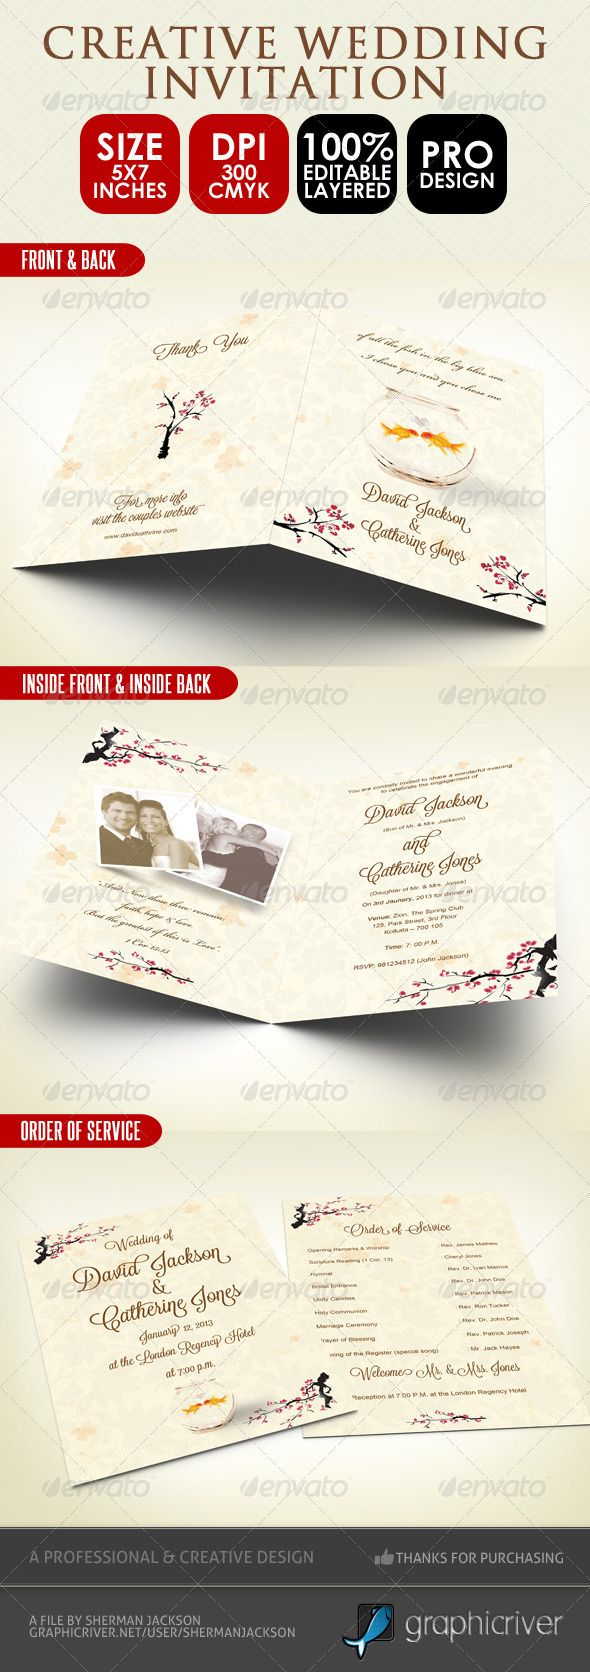 free wedding invitation psd%0A Creative Wedding Card  u     Order of Service PSD